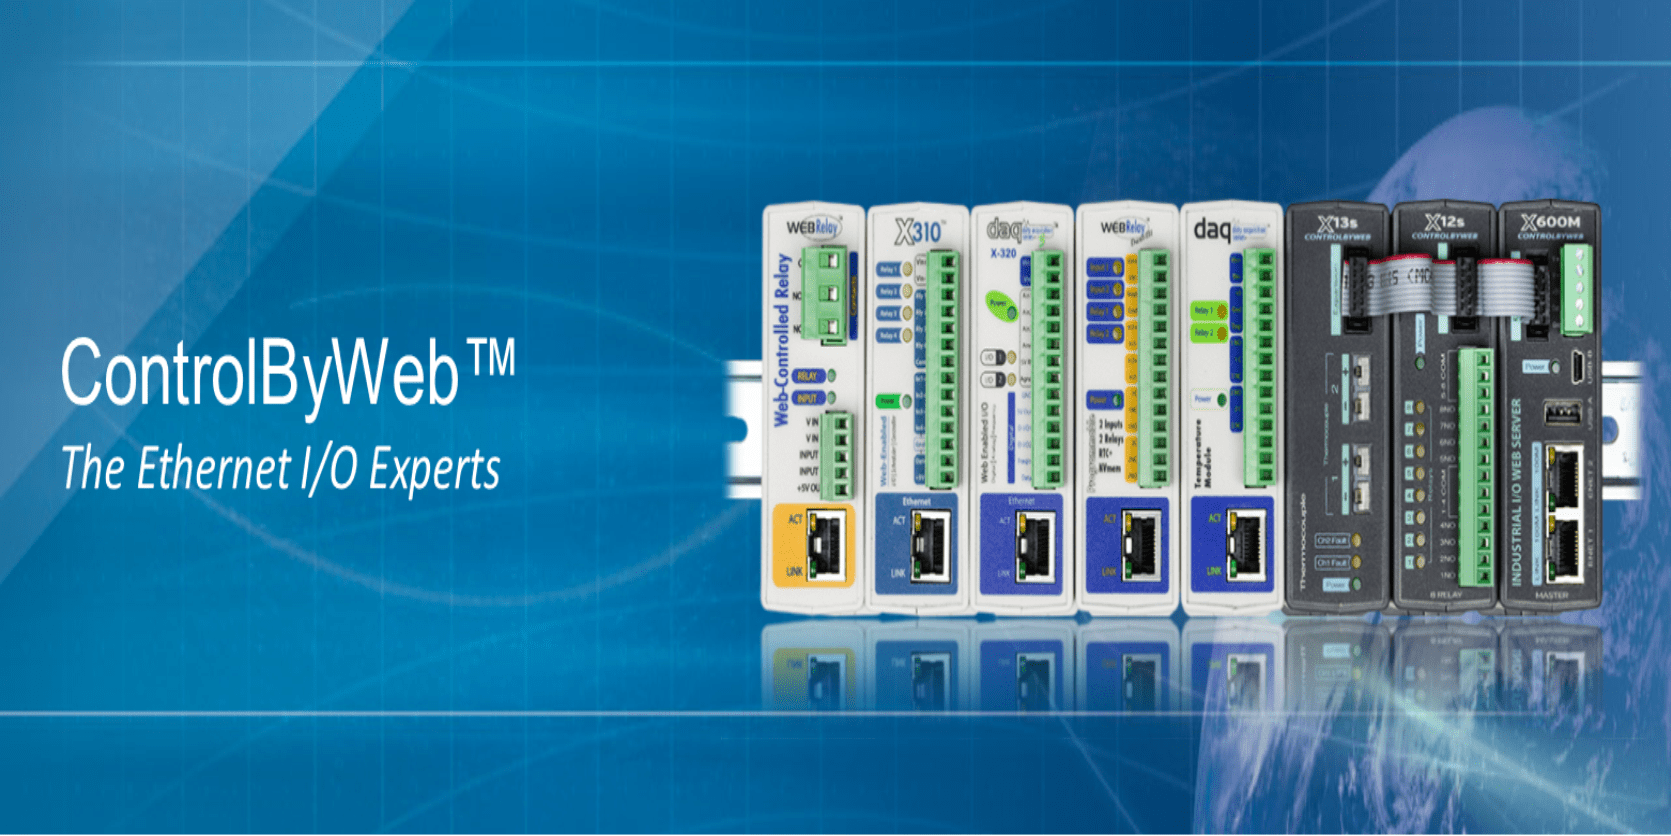 ControlByWeb - Ethernet I/O Experts